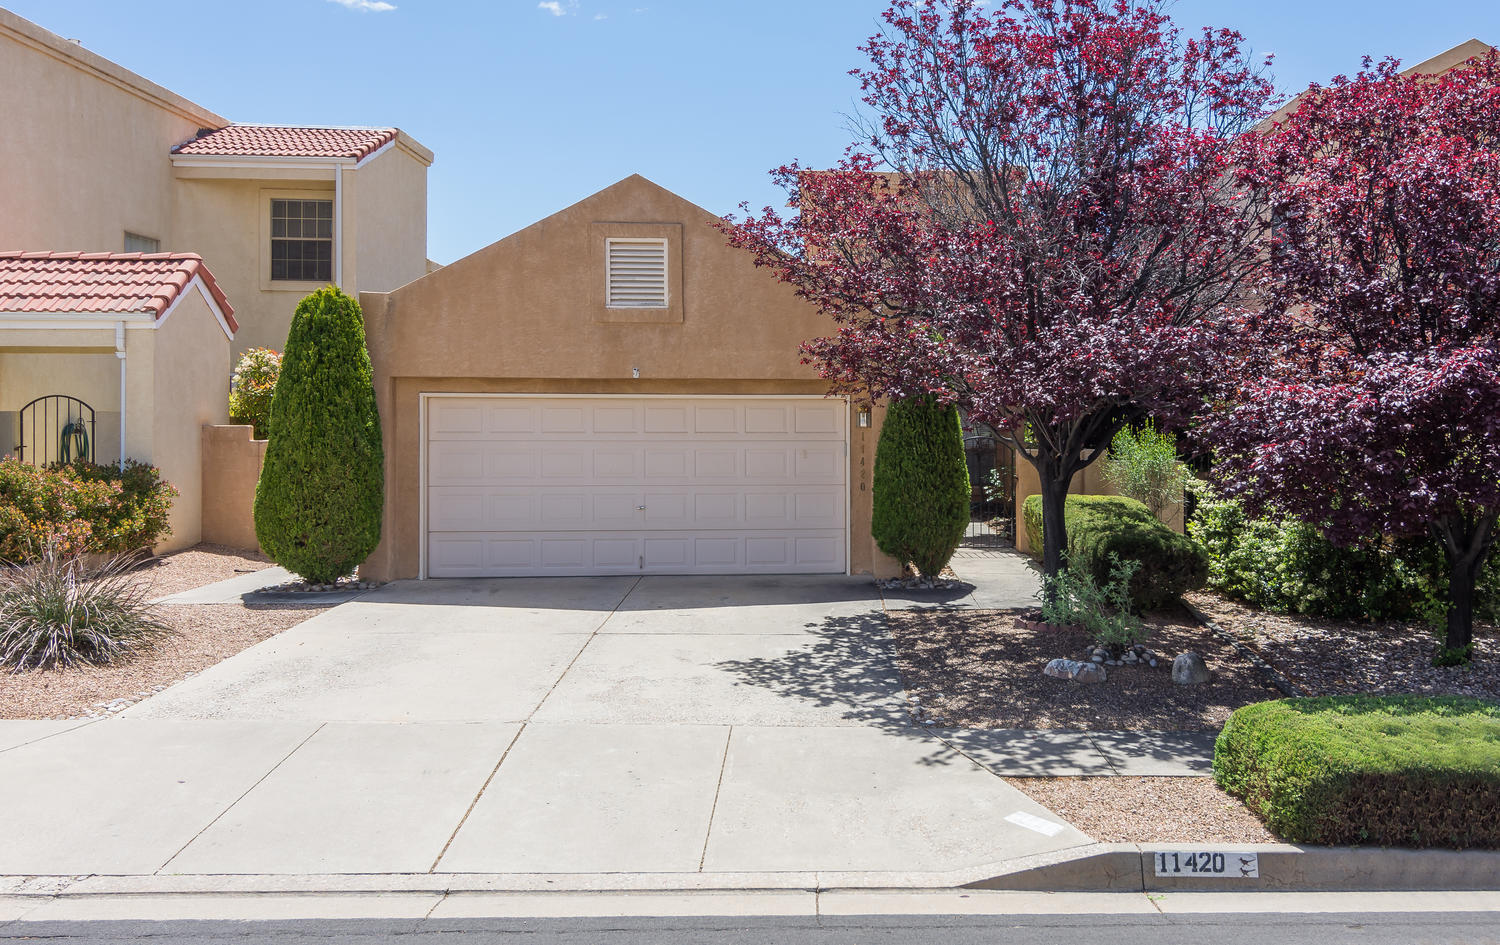 11420 ACADEMY RIDGE ROAD NE, ALBUQUERQUE, NM 87111